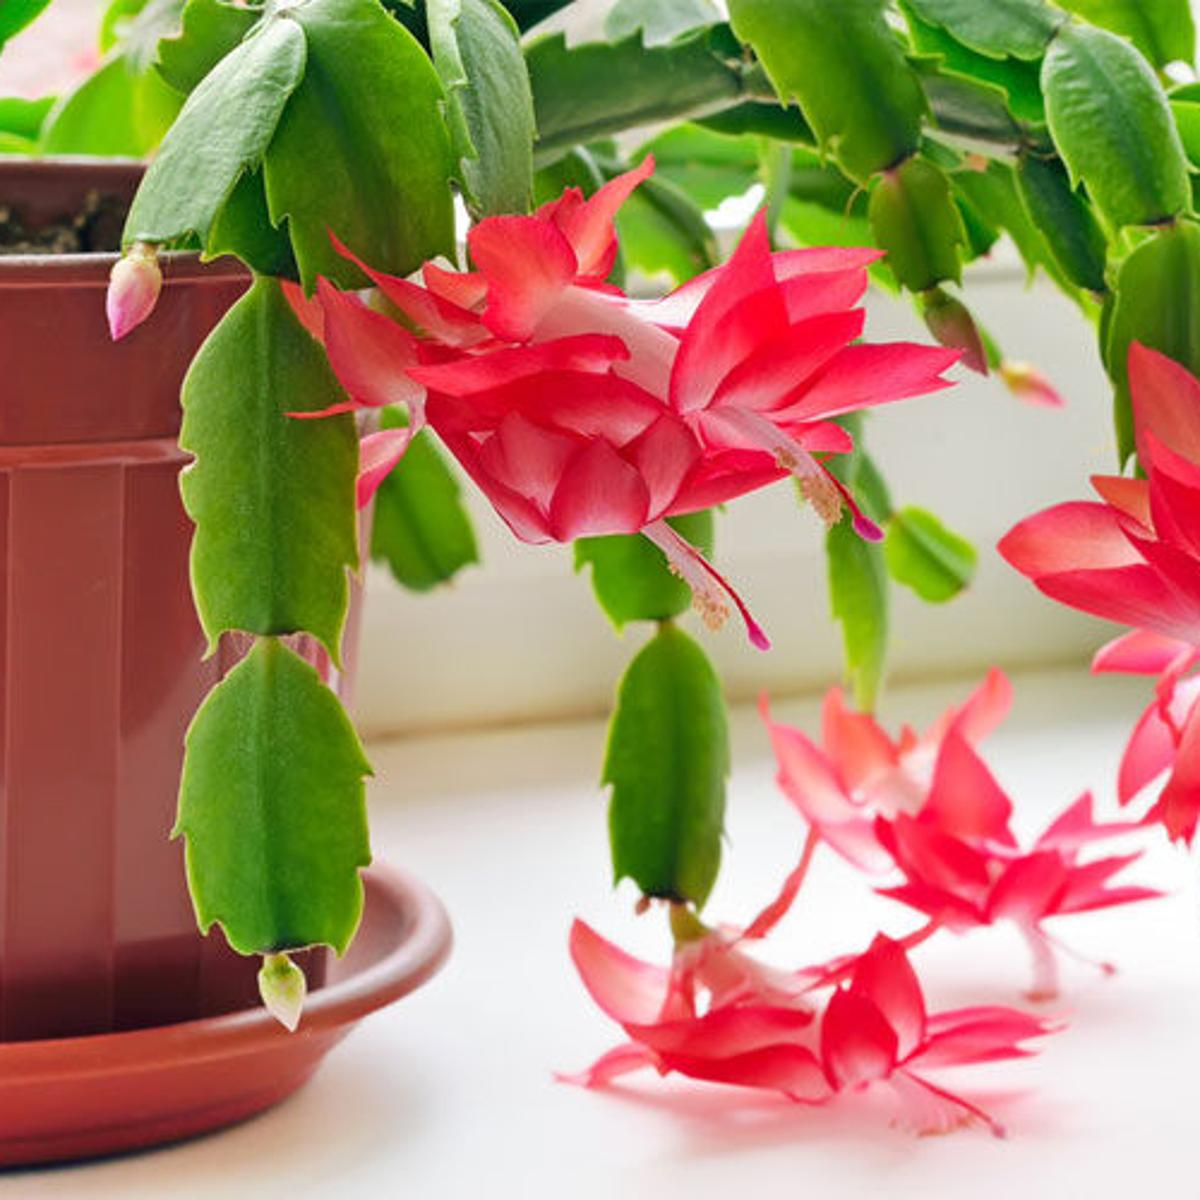 Christmas Cactus Bloom.Care For Your Christmas Cactus Home Garden Daily